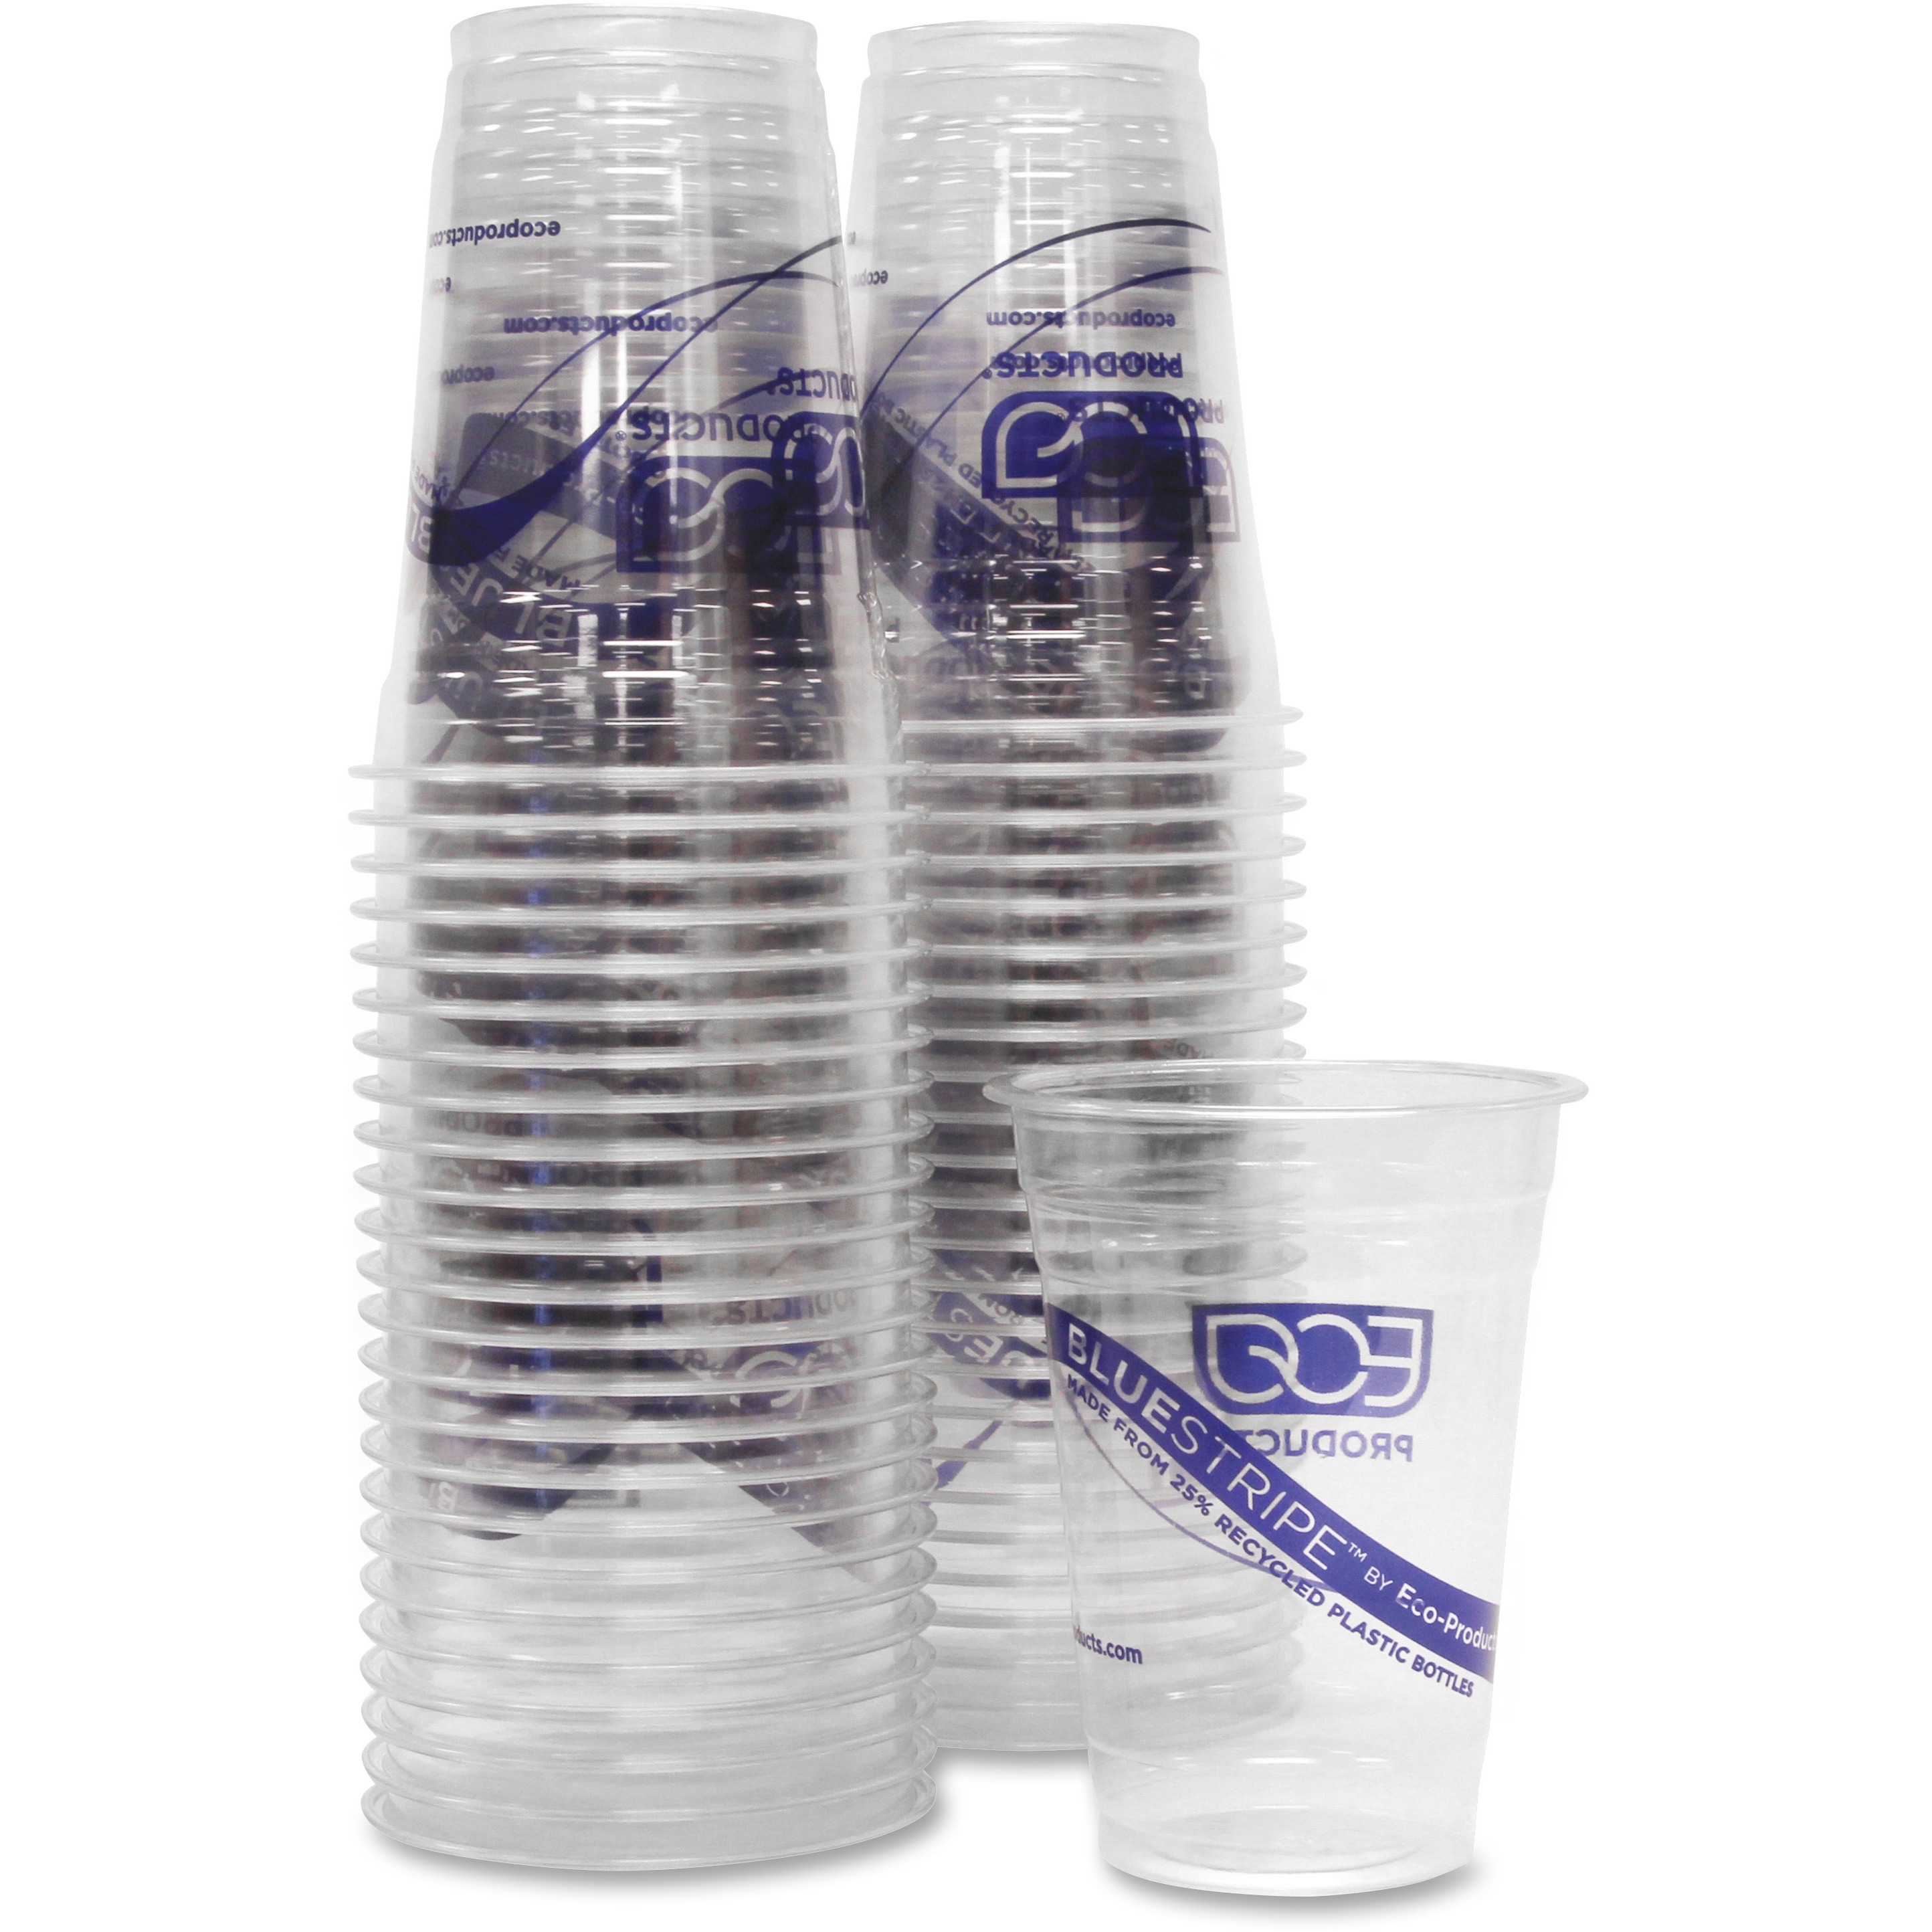 Eco-Products, ECOEPCR16, BlueStripe Cold Cups, 1000 / Carton, Clear, 16 fl oz